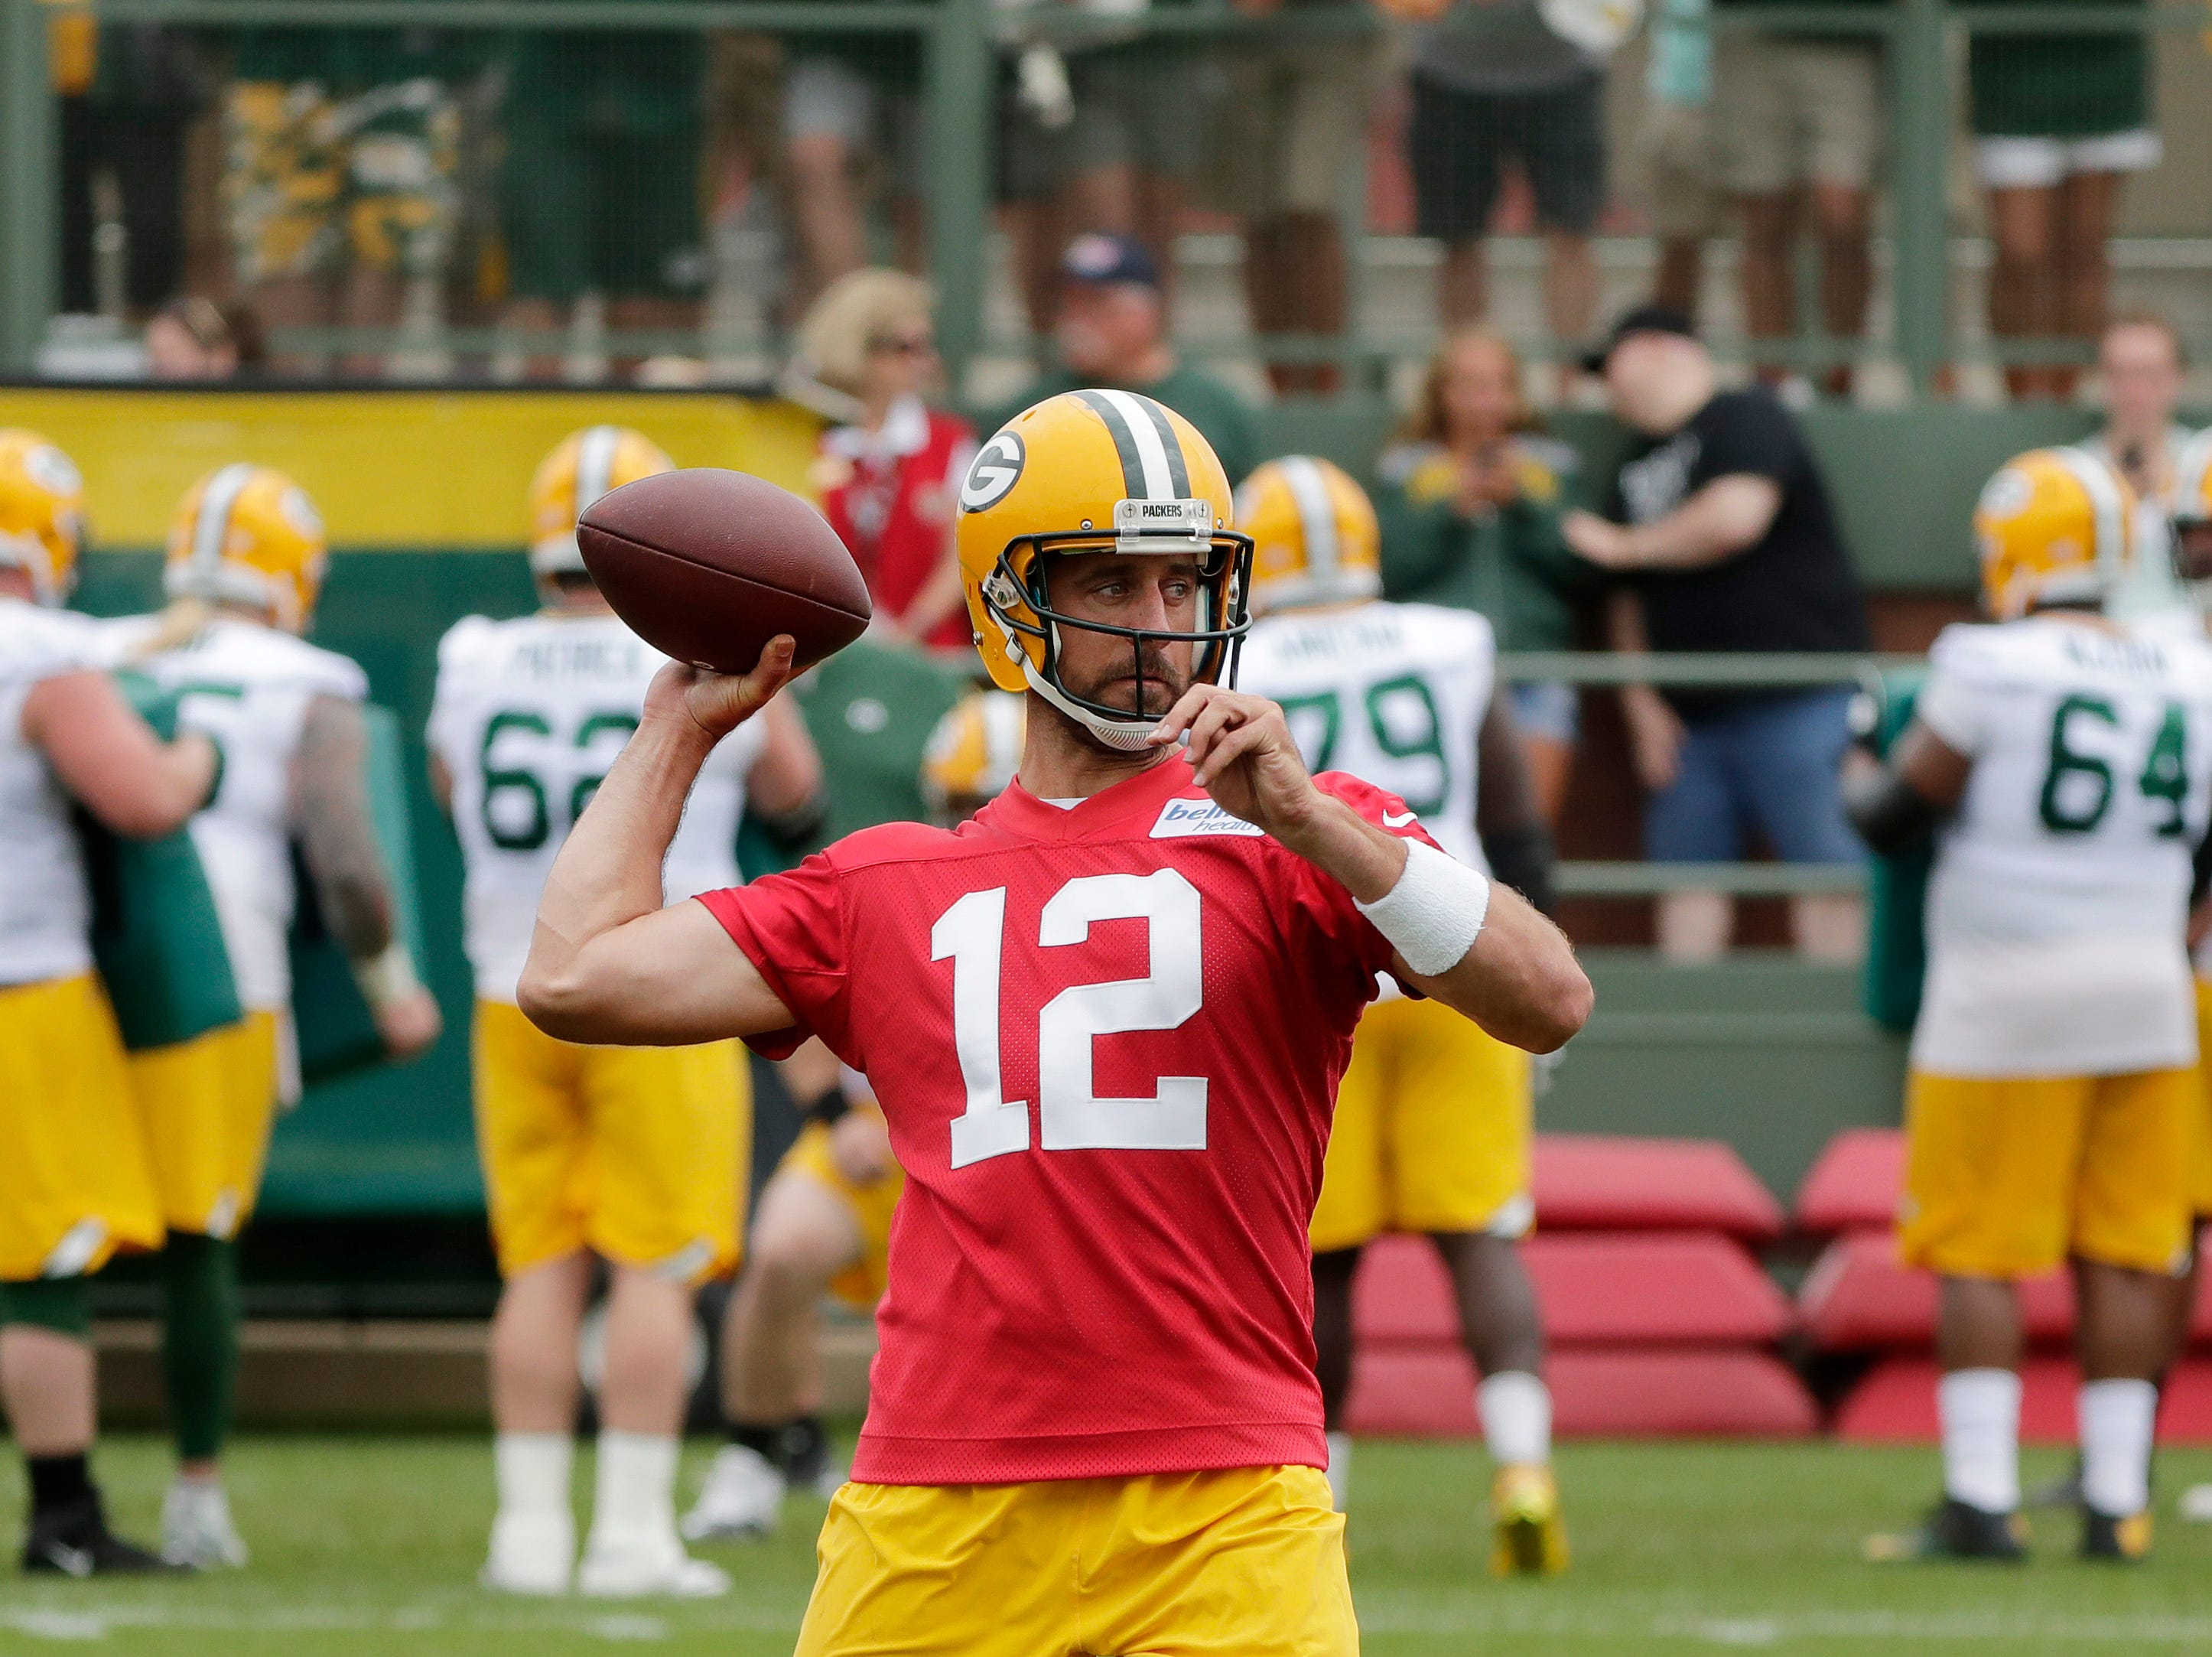 7. Packers (10): Aaron Rodgers' return alone should vault them back to postseason. But success of new defensive philosophy could determine Pack's course.